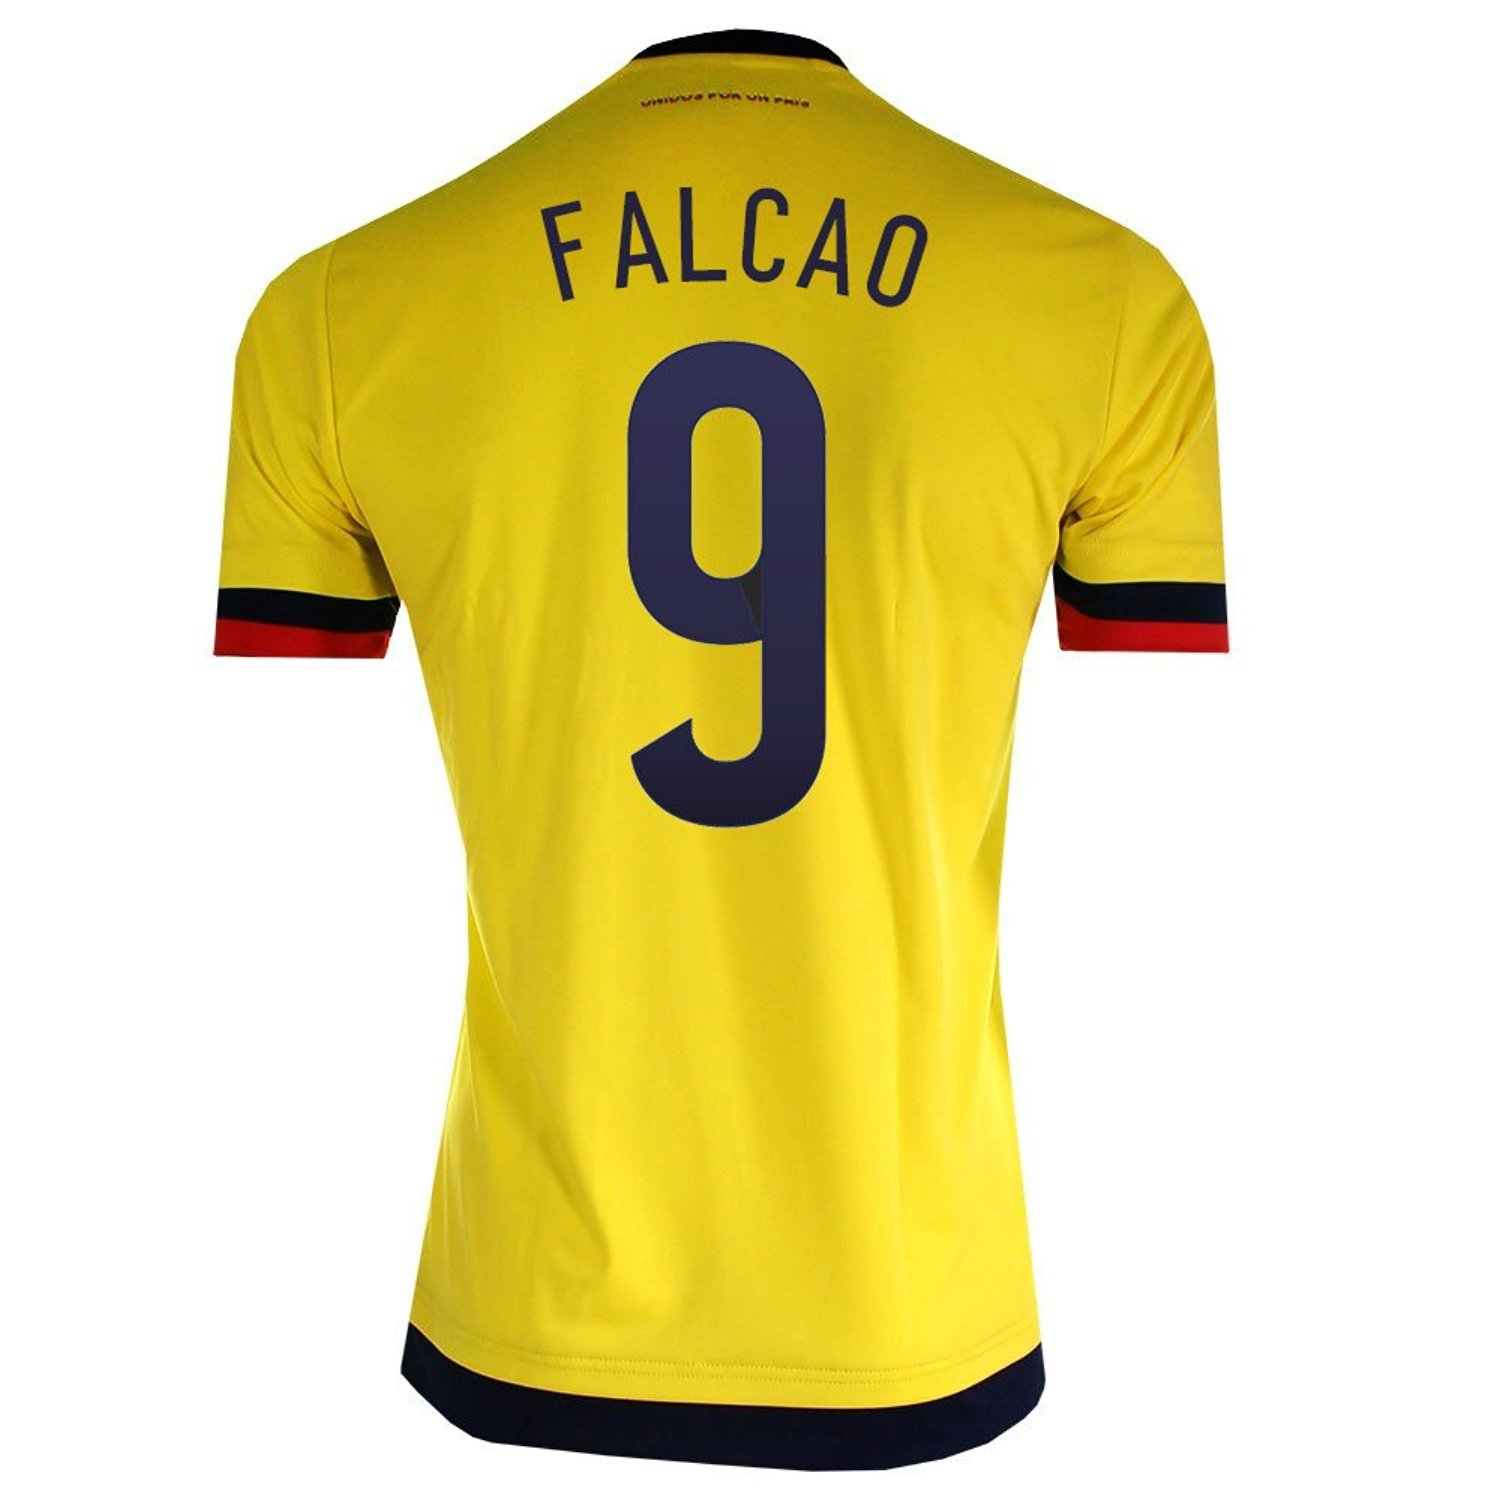 a79239e474f Get Quotations · Falcao  9 Colombia Home Soccer Jersey 2015